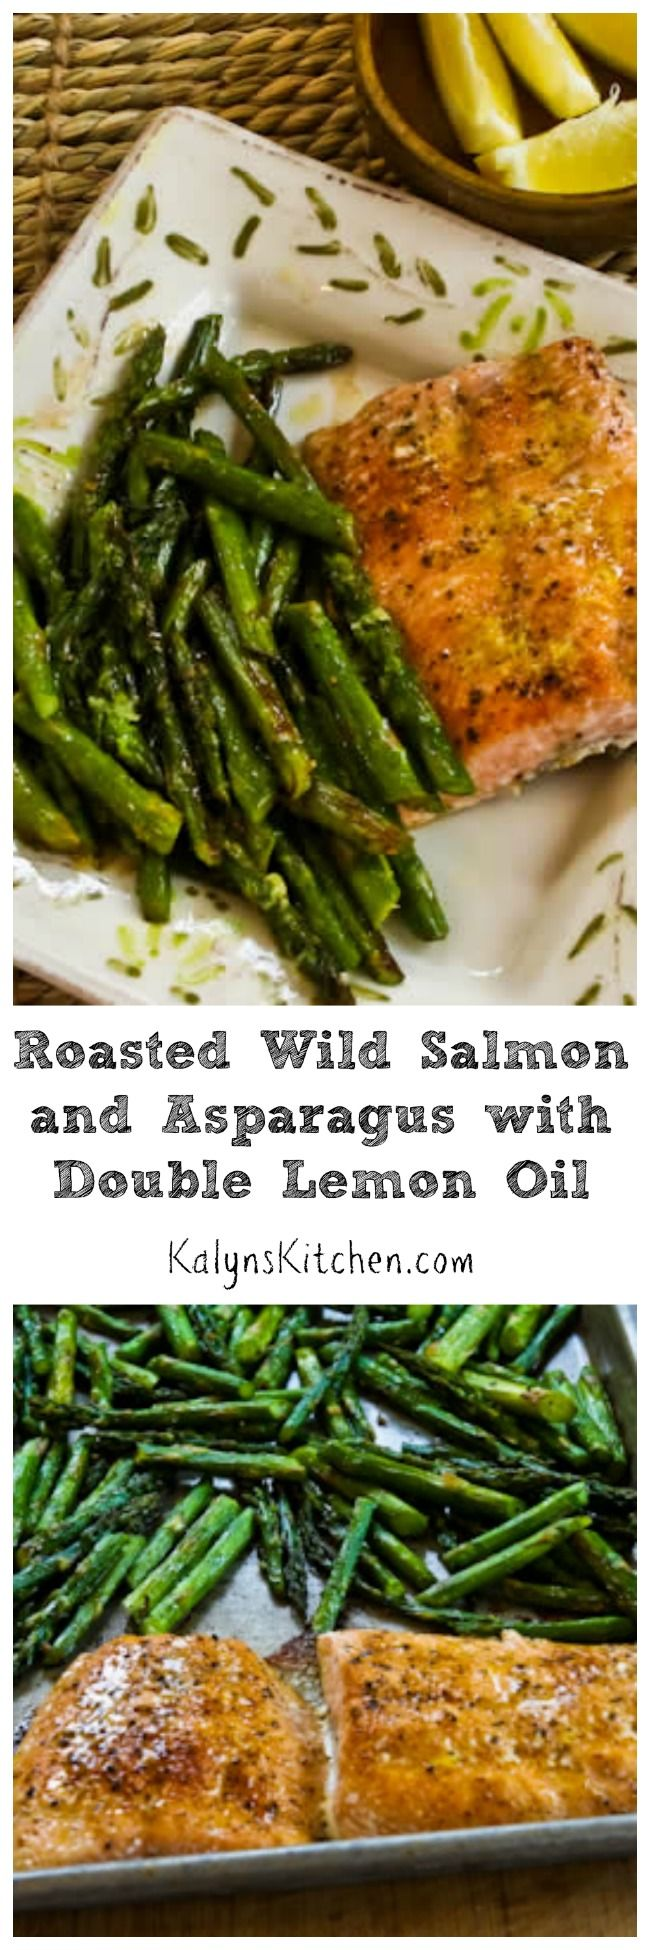 Roasted Wild Salmon and Asparagus with Double-Lemon Oil is a delicious dinner that's #LowCarb, #GlutenFree, and #Paleo.  Cook this in a toaster oven if you don't want to heat up the house!  [from KalynsKitchen.com]